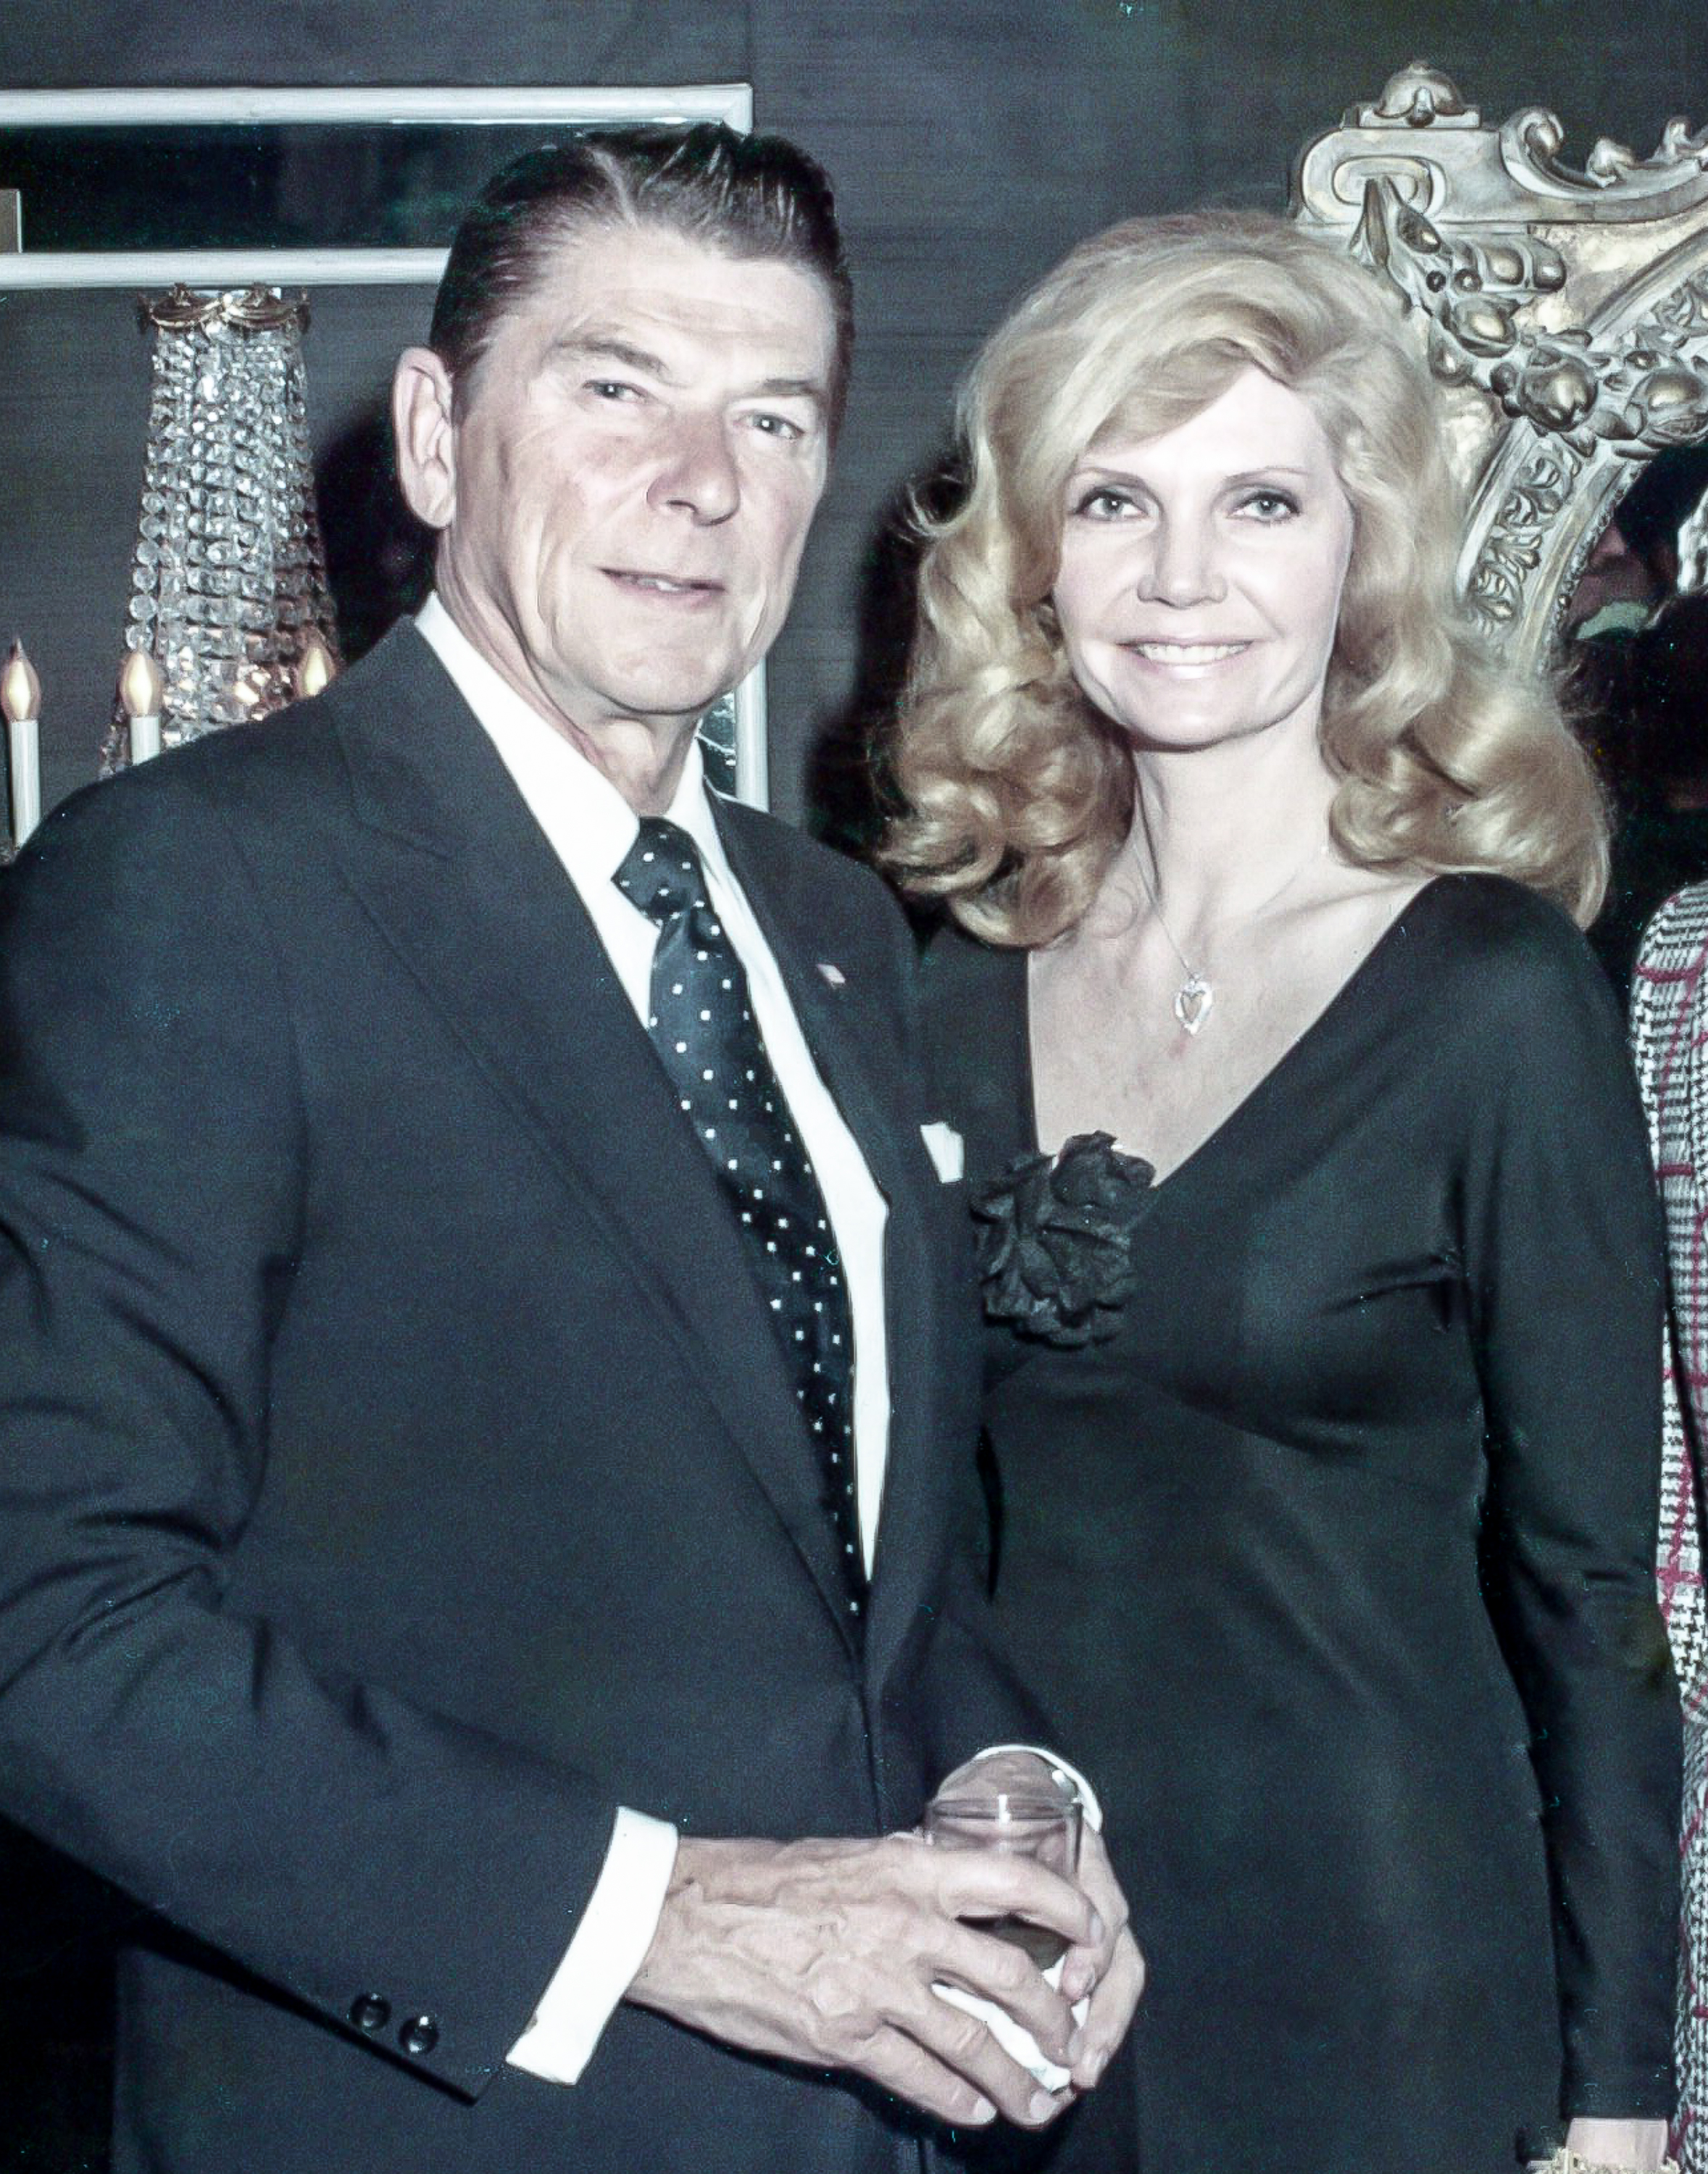 Ronald Reagan & Cindy